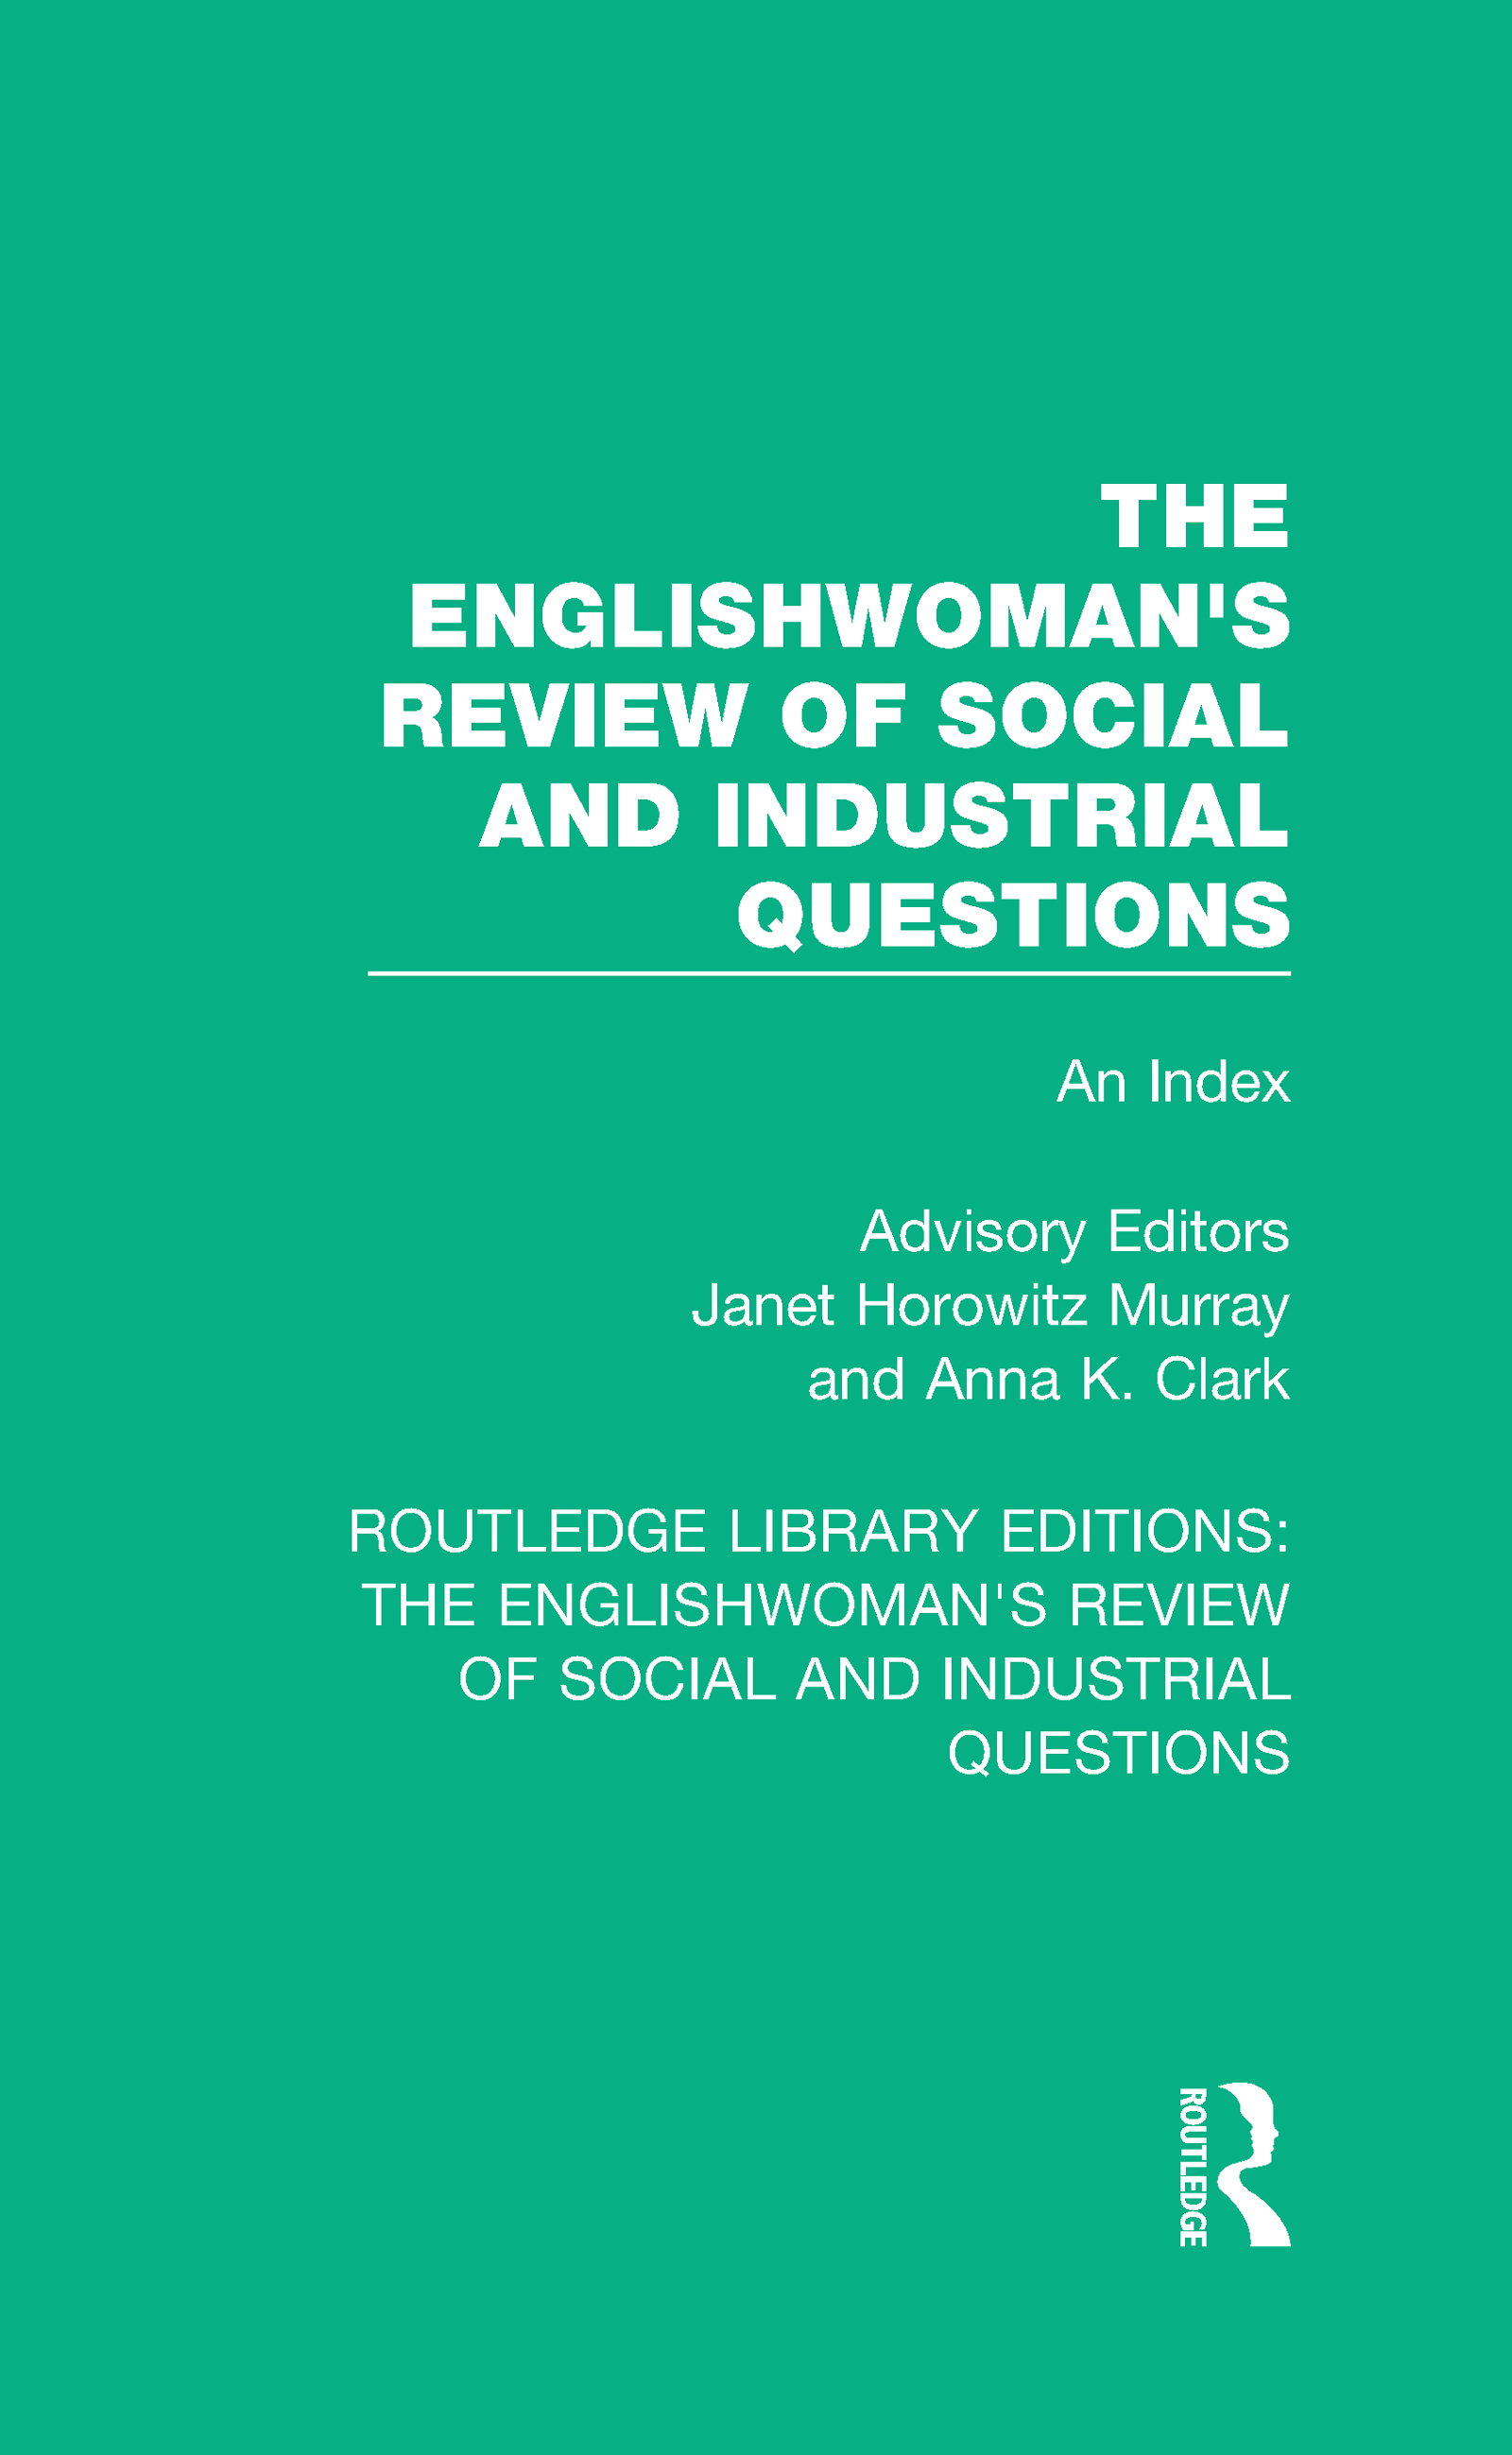 The Englishwoman's Review of Social and Industrial Questions: An Index book cover